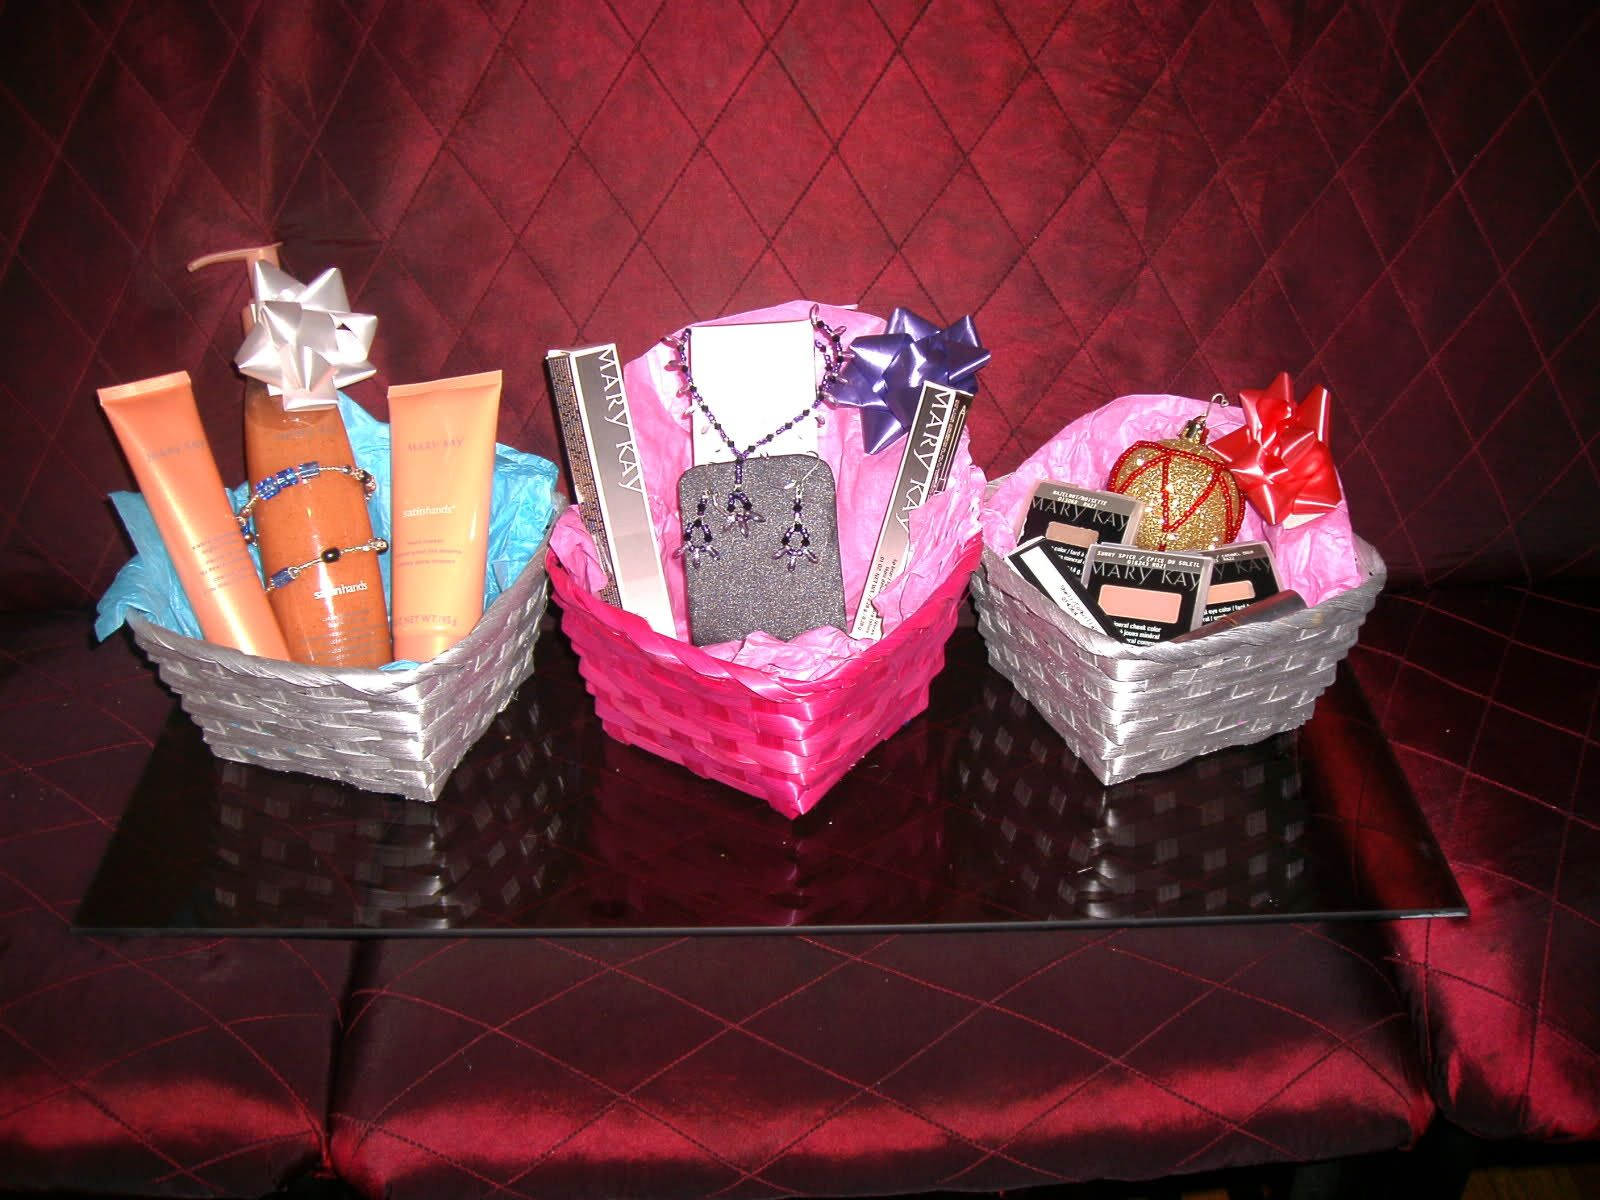 Mary kay gift basket ideas awsome marykay ideas pinterest mary kay gift basket ideas negle